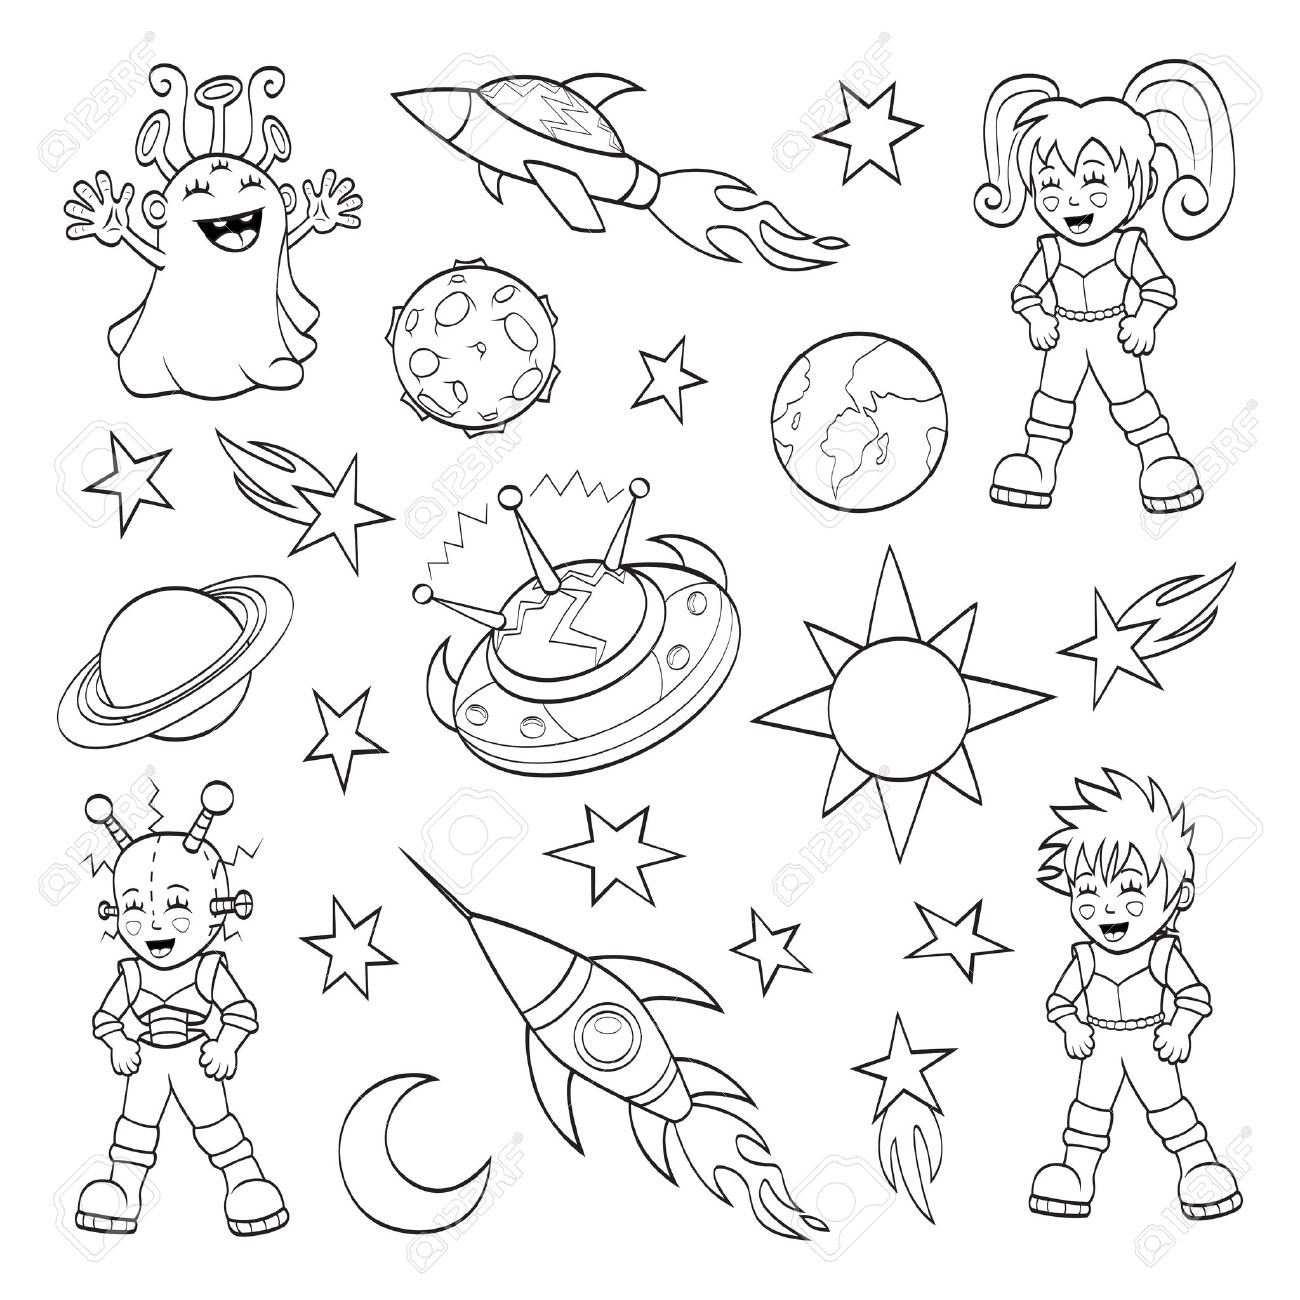 Cartoon Outer Space Set Coloring Book Royalty Free Cliparts ...